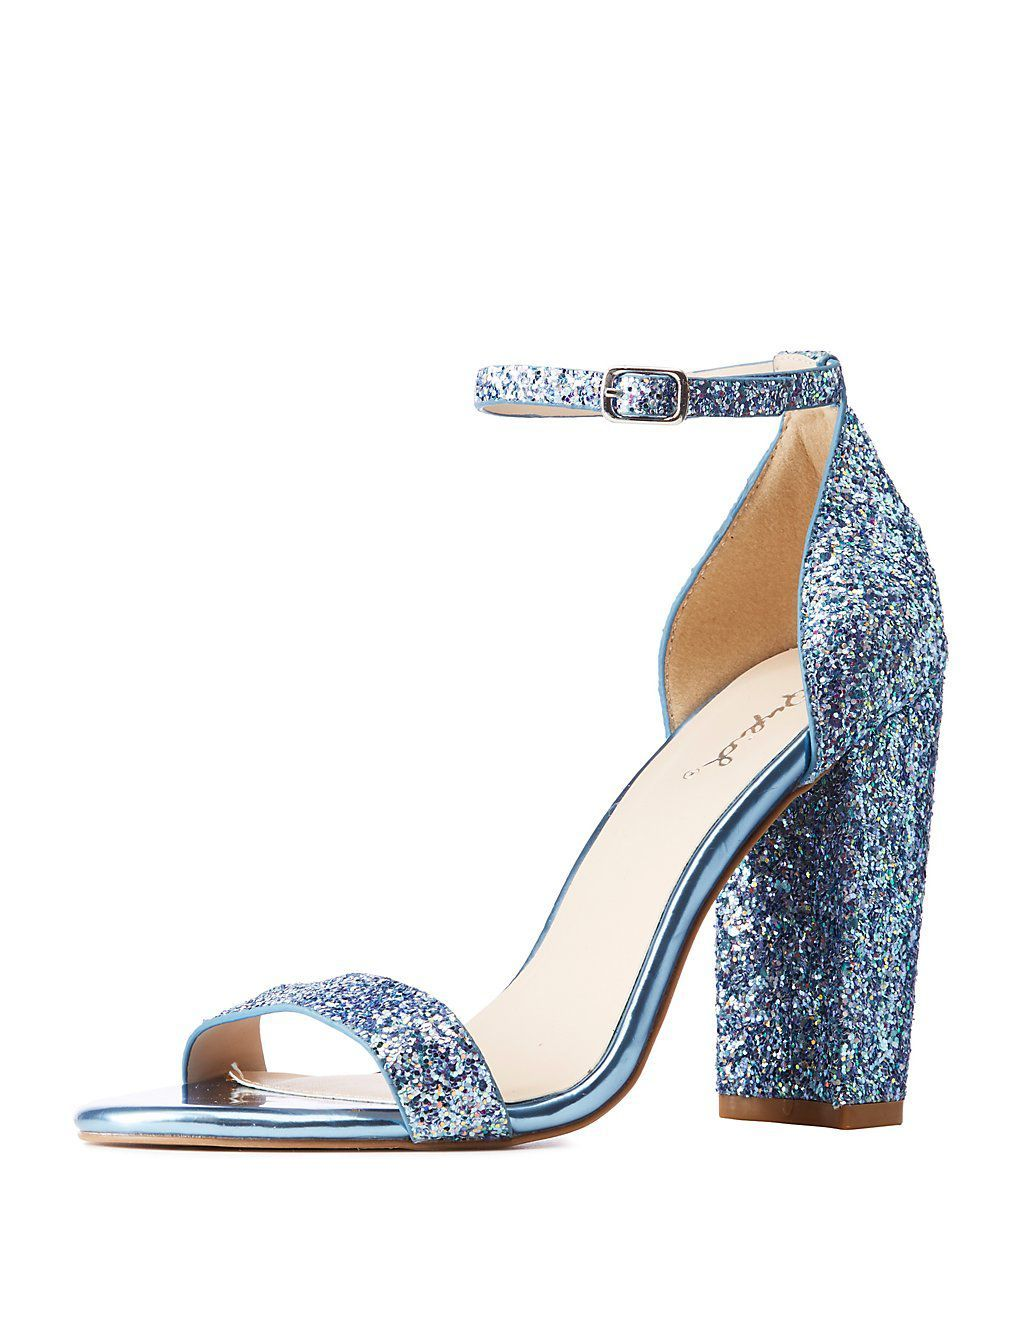 1779c669594 10 Best Prom Shoes 2019 - Trendy Shoes